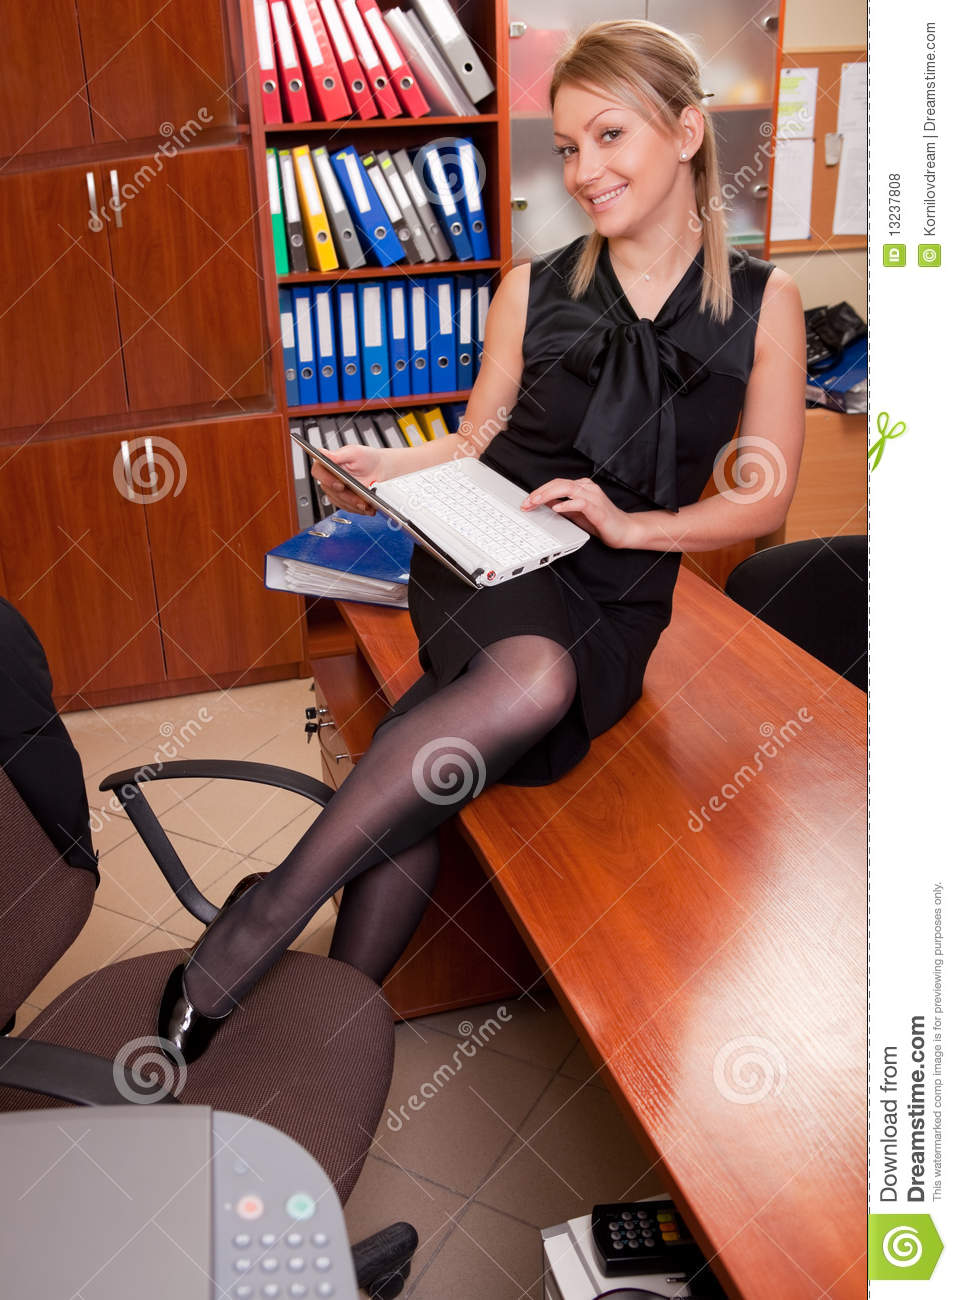 Sexy Office Worker Royalty Free Stock Photos  Image 13237808